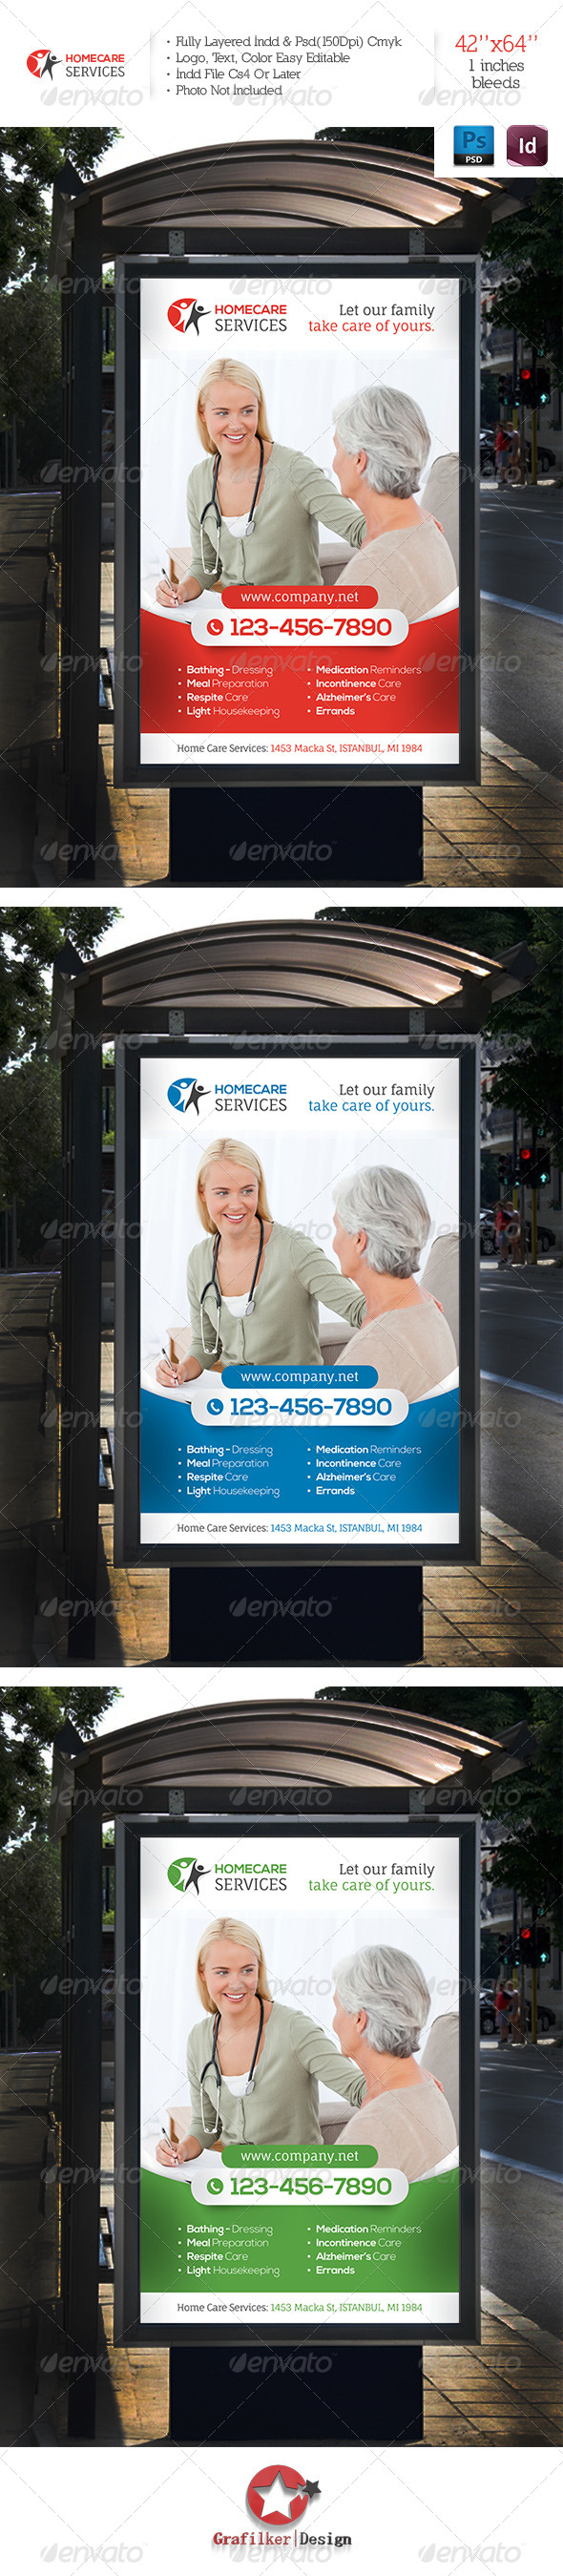 Home Care Services Banner Template - Signage Print Templates